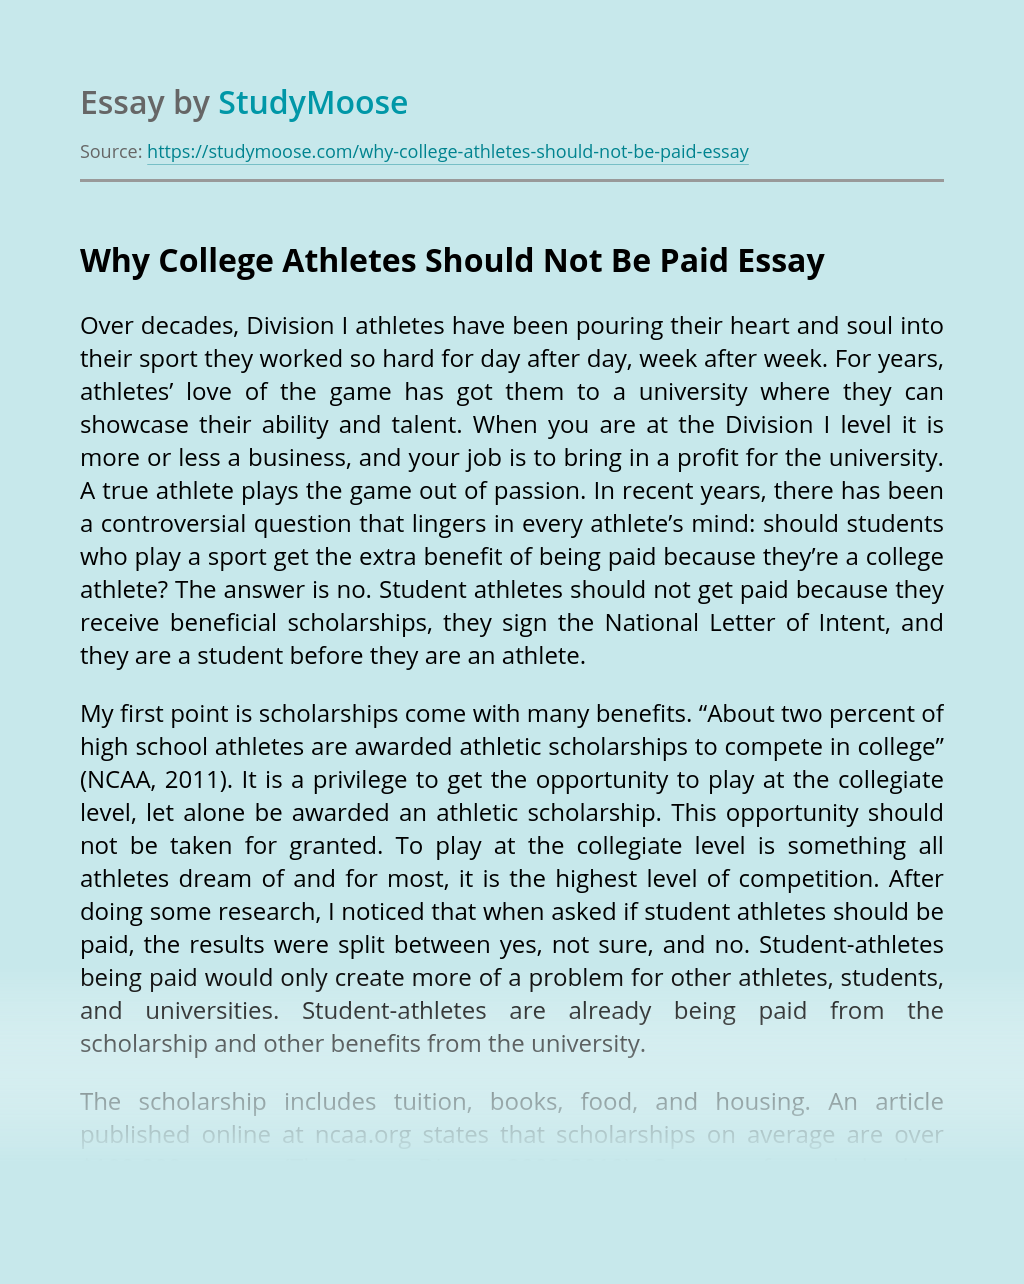 Why College Athletes Should Not Be Paid